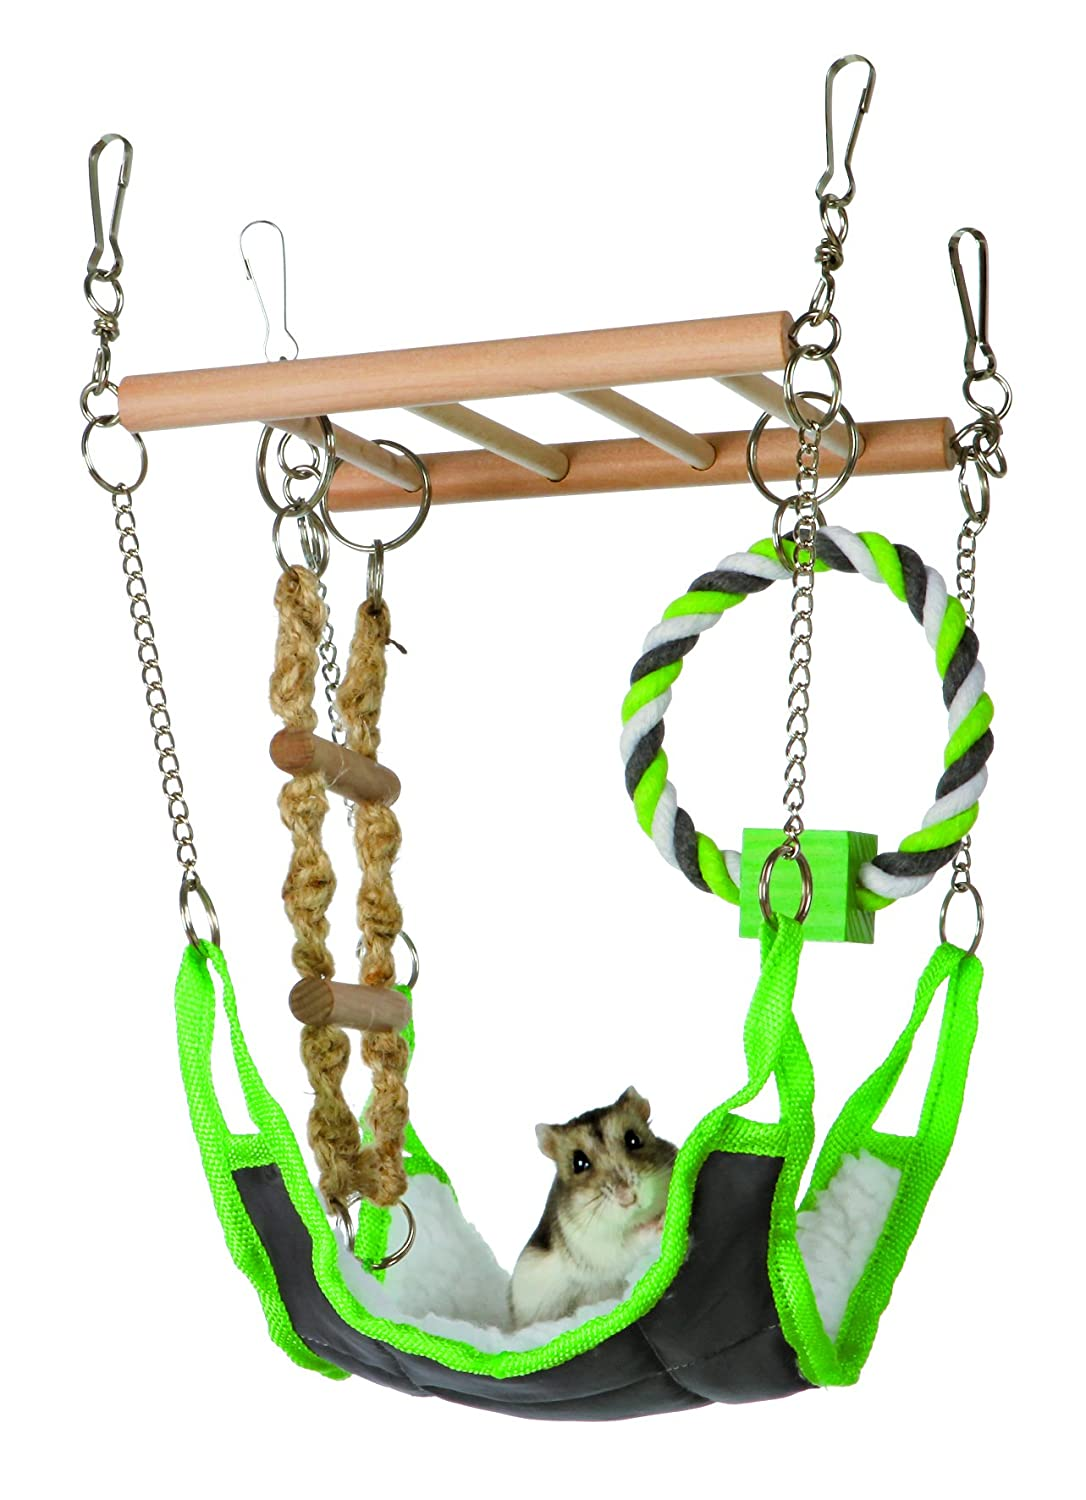 Hammock & Playbridge Gerbil or Hamster Cage Pet Toy